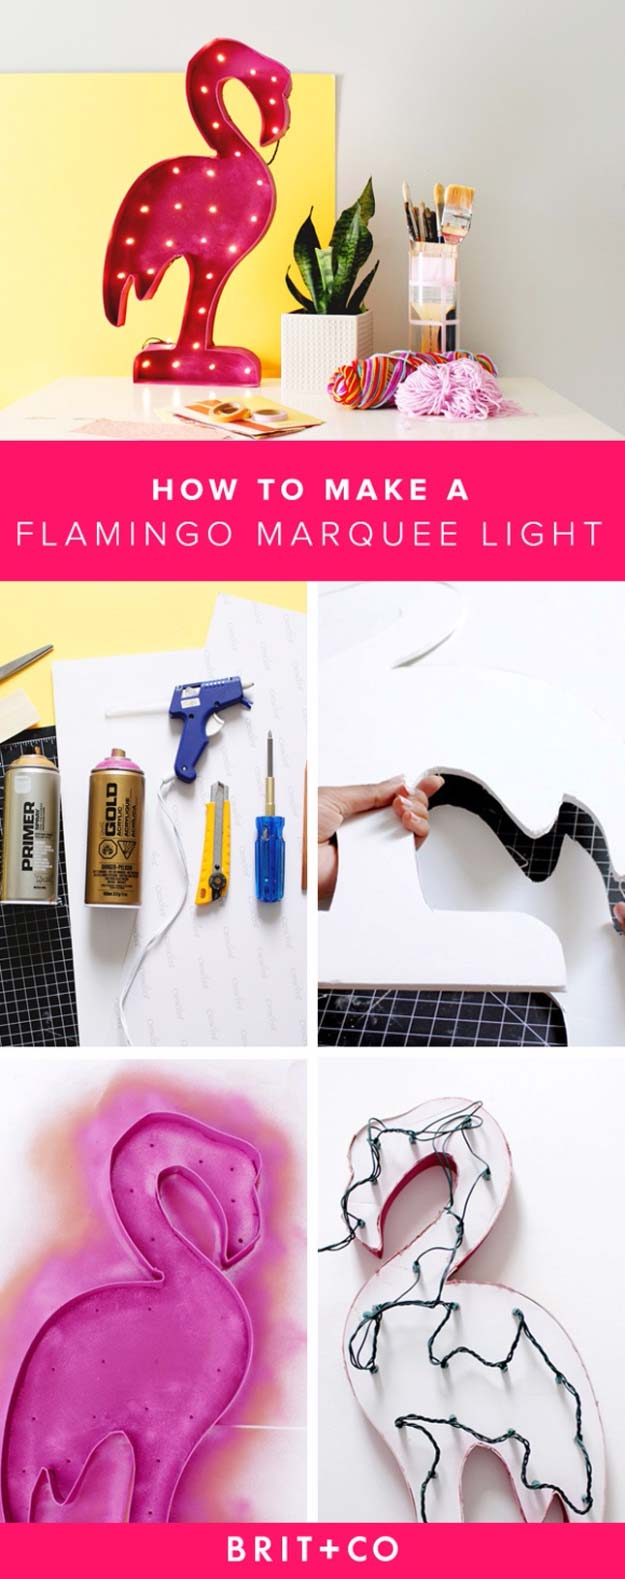 Cool Ways To Use Christmas Lights - Flamingo Marquee Light - Best Easy DIY Ideas for String Lights for Room Decoration, Home Decor and Creative DIY Bedroom Lighting - Creative Christmas Light Tutorials with Step by Step Instructions - Creative Crafts and DIY Projects for Teens, Teenagers and Adults http://diyprojectsforteens.com/diy-projects-string-lights